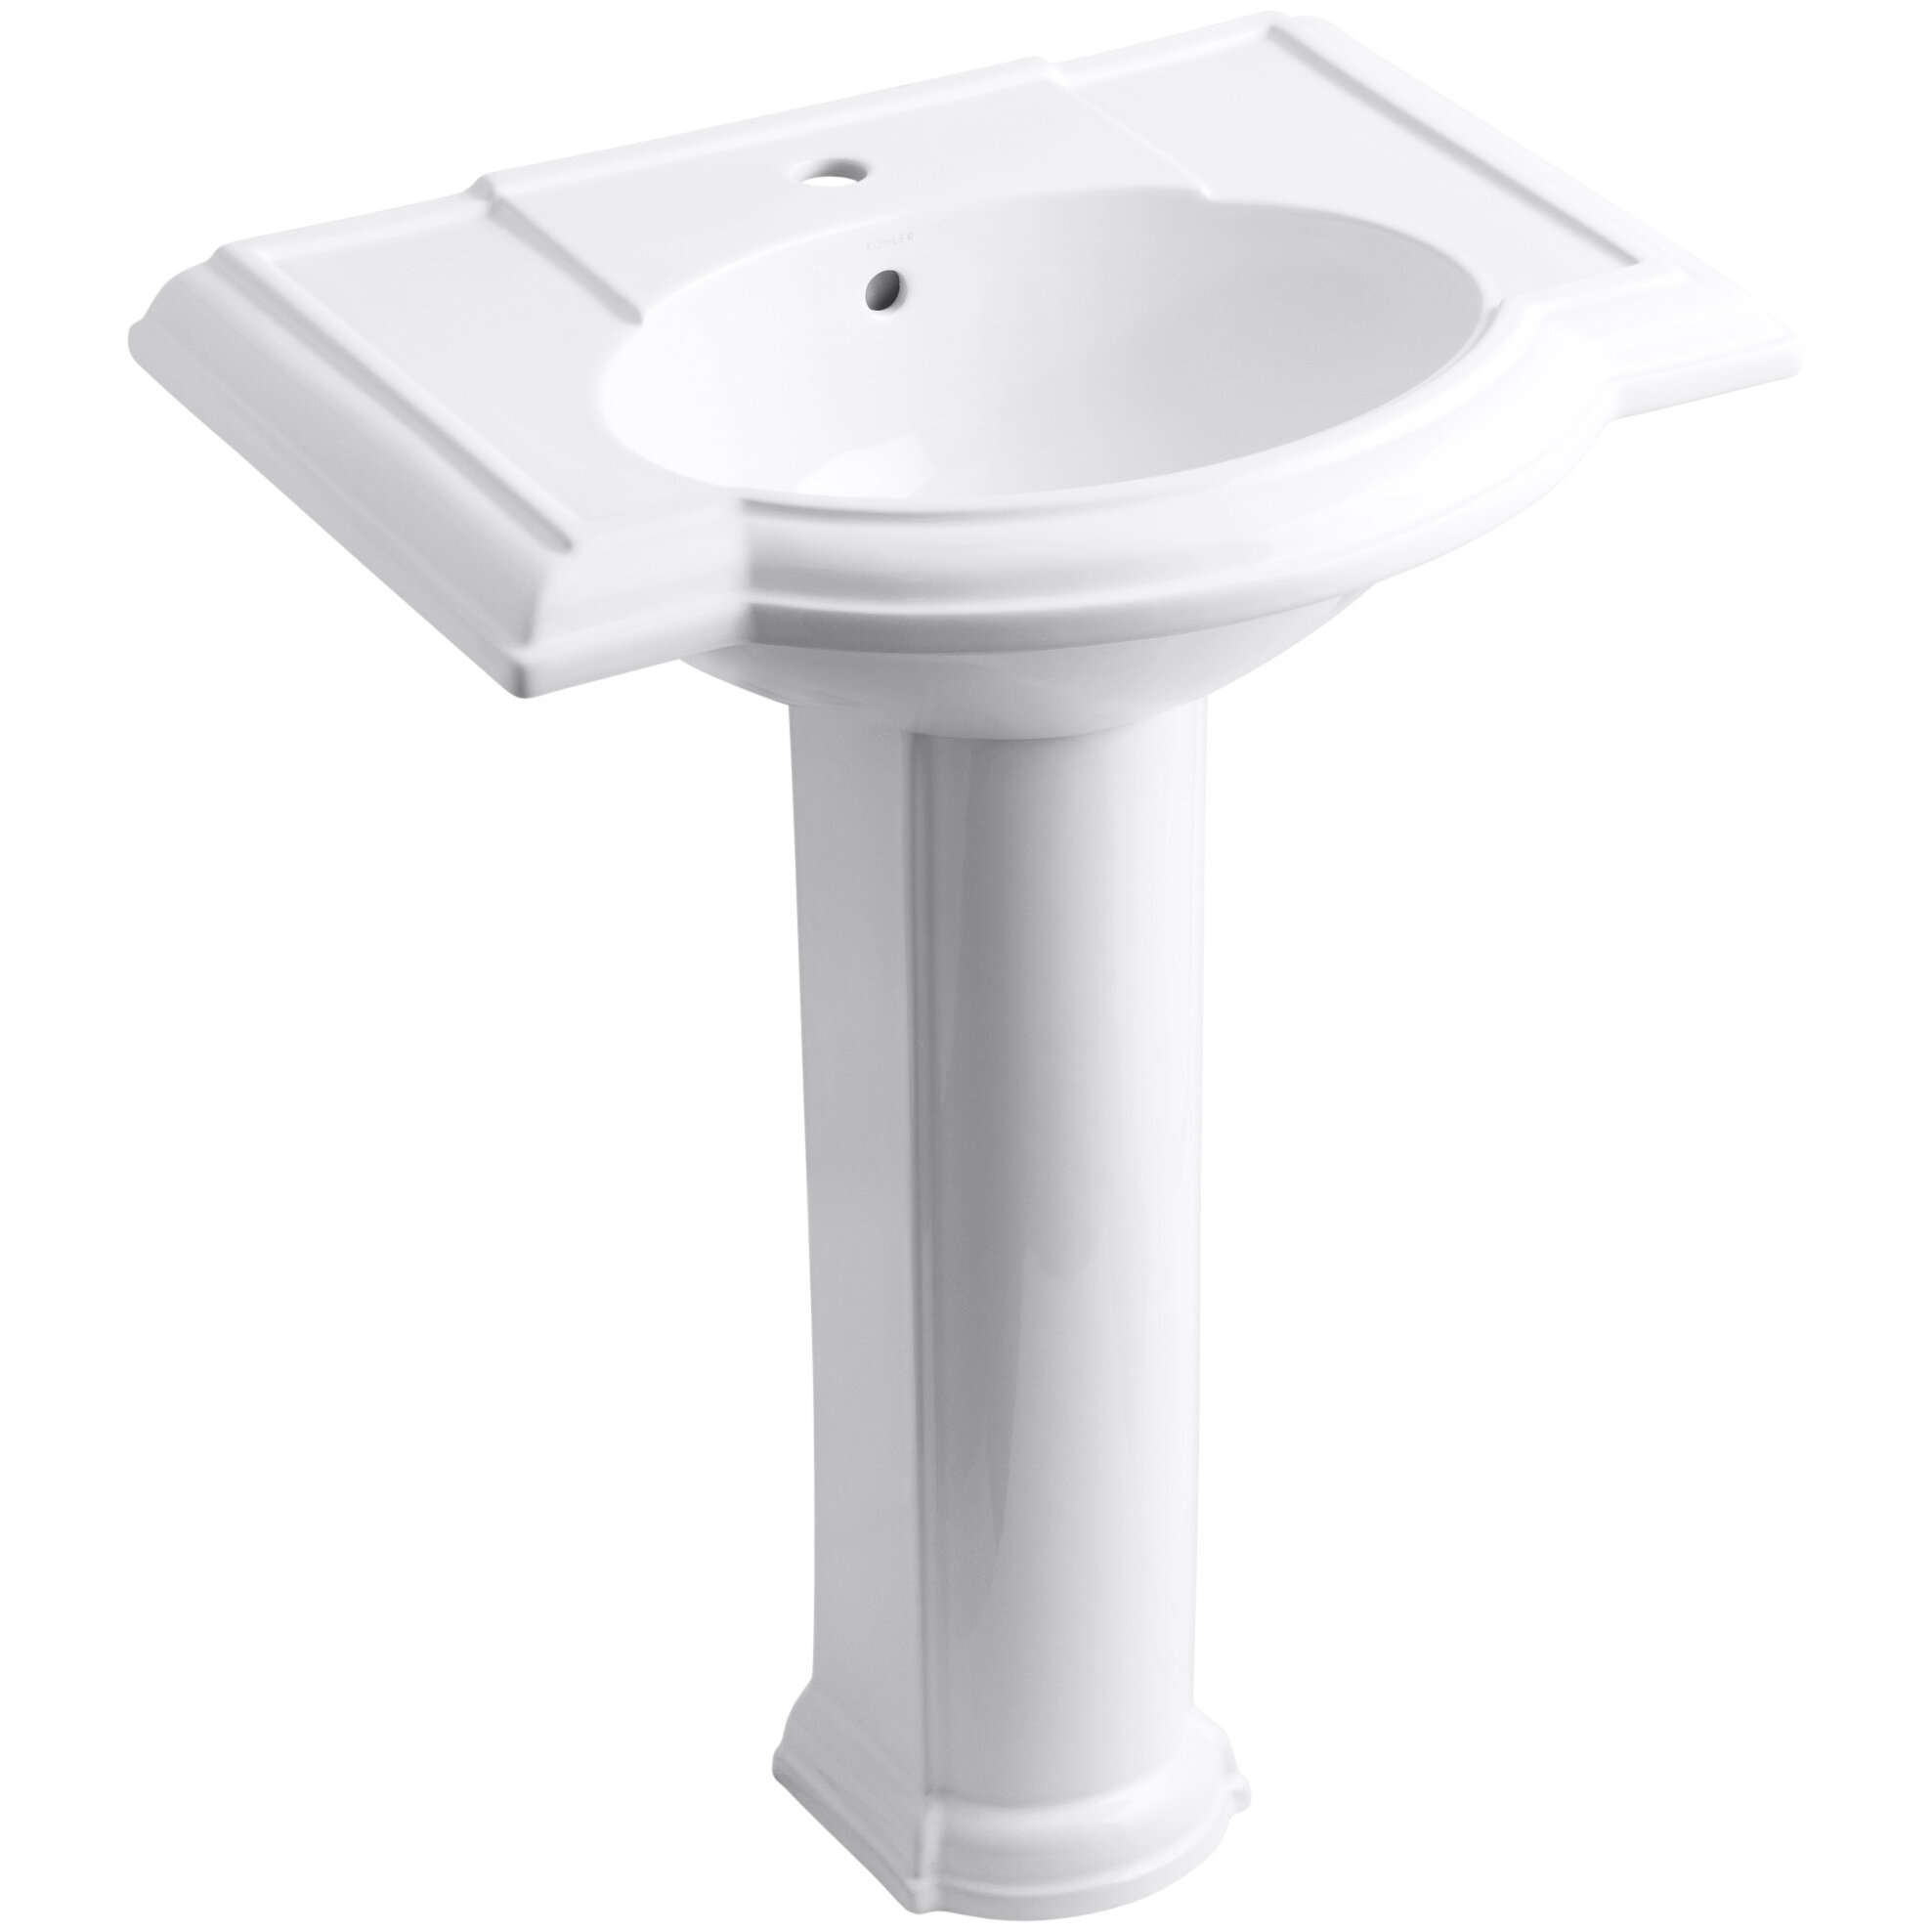 Kohler devonshire 27 pedestal bathroom sink reviews wayfair - Kohler devonshire reviews ...